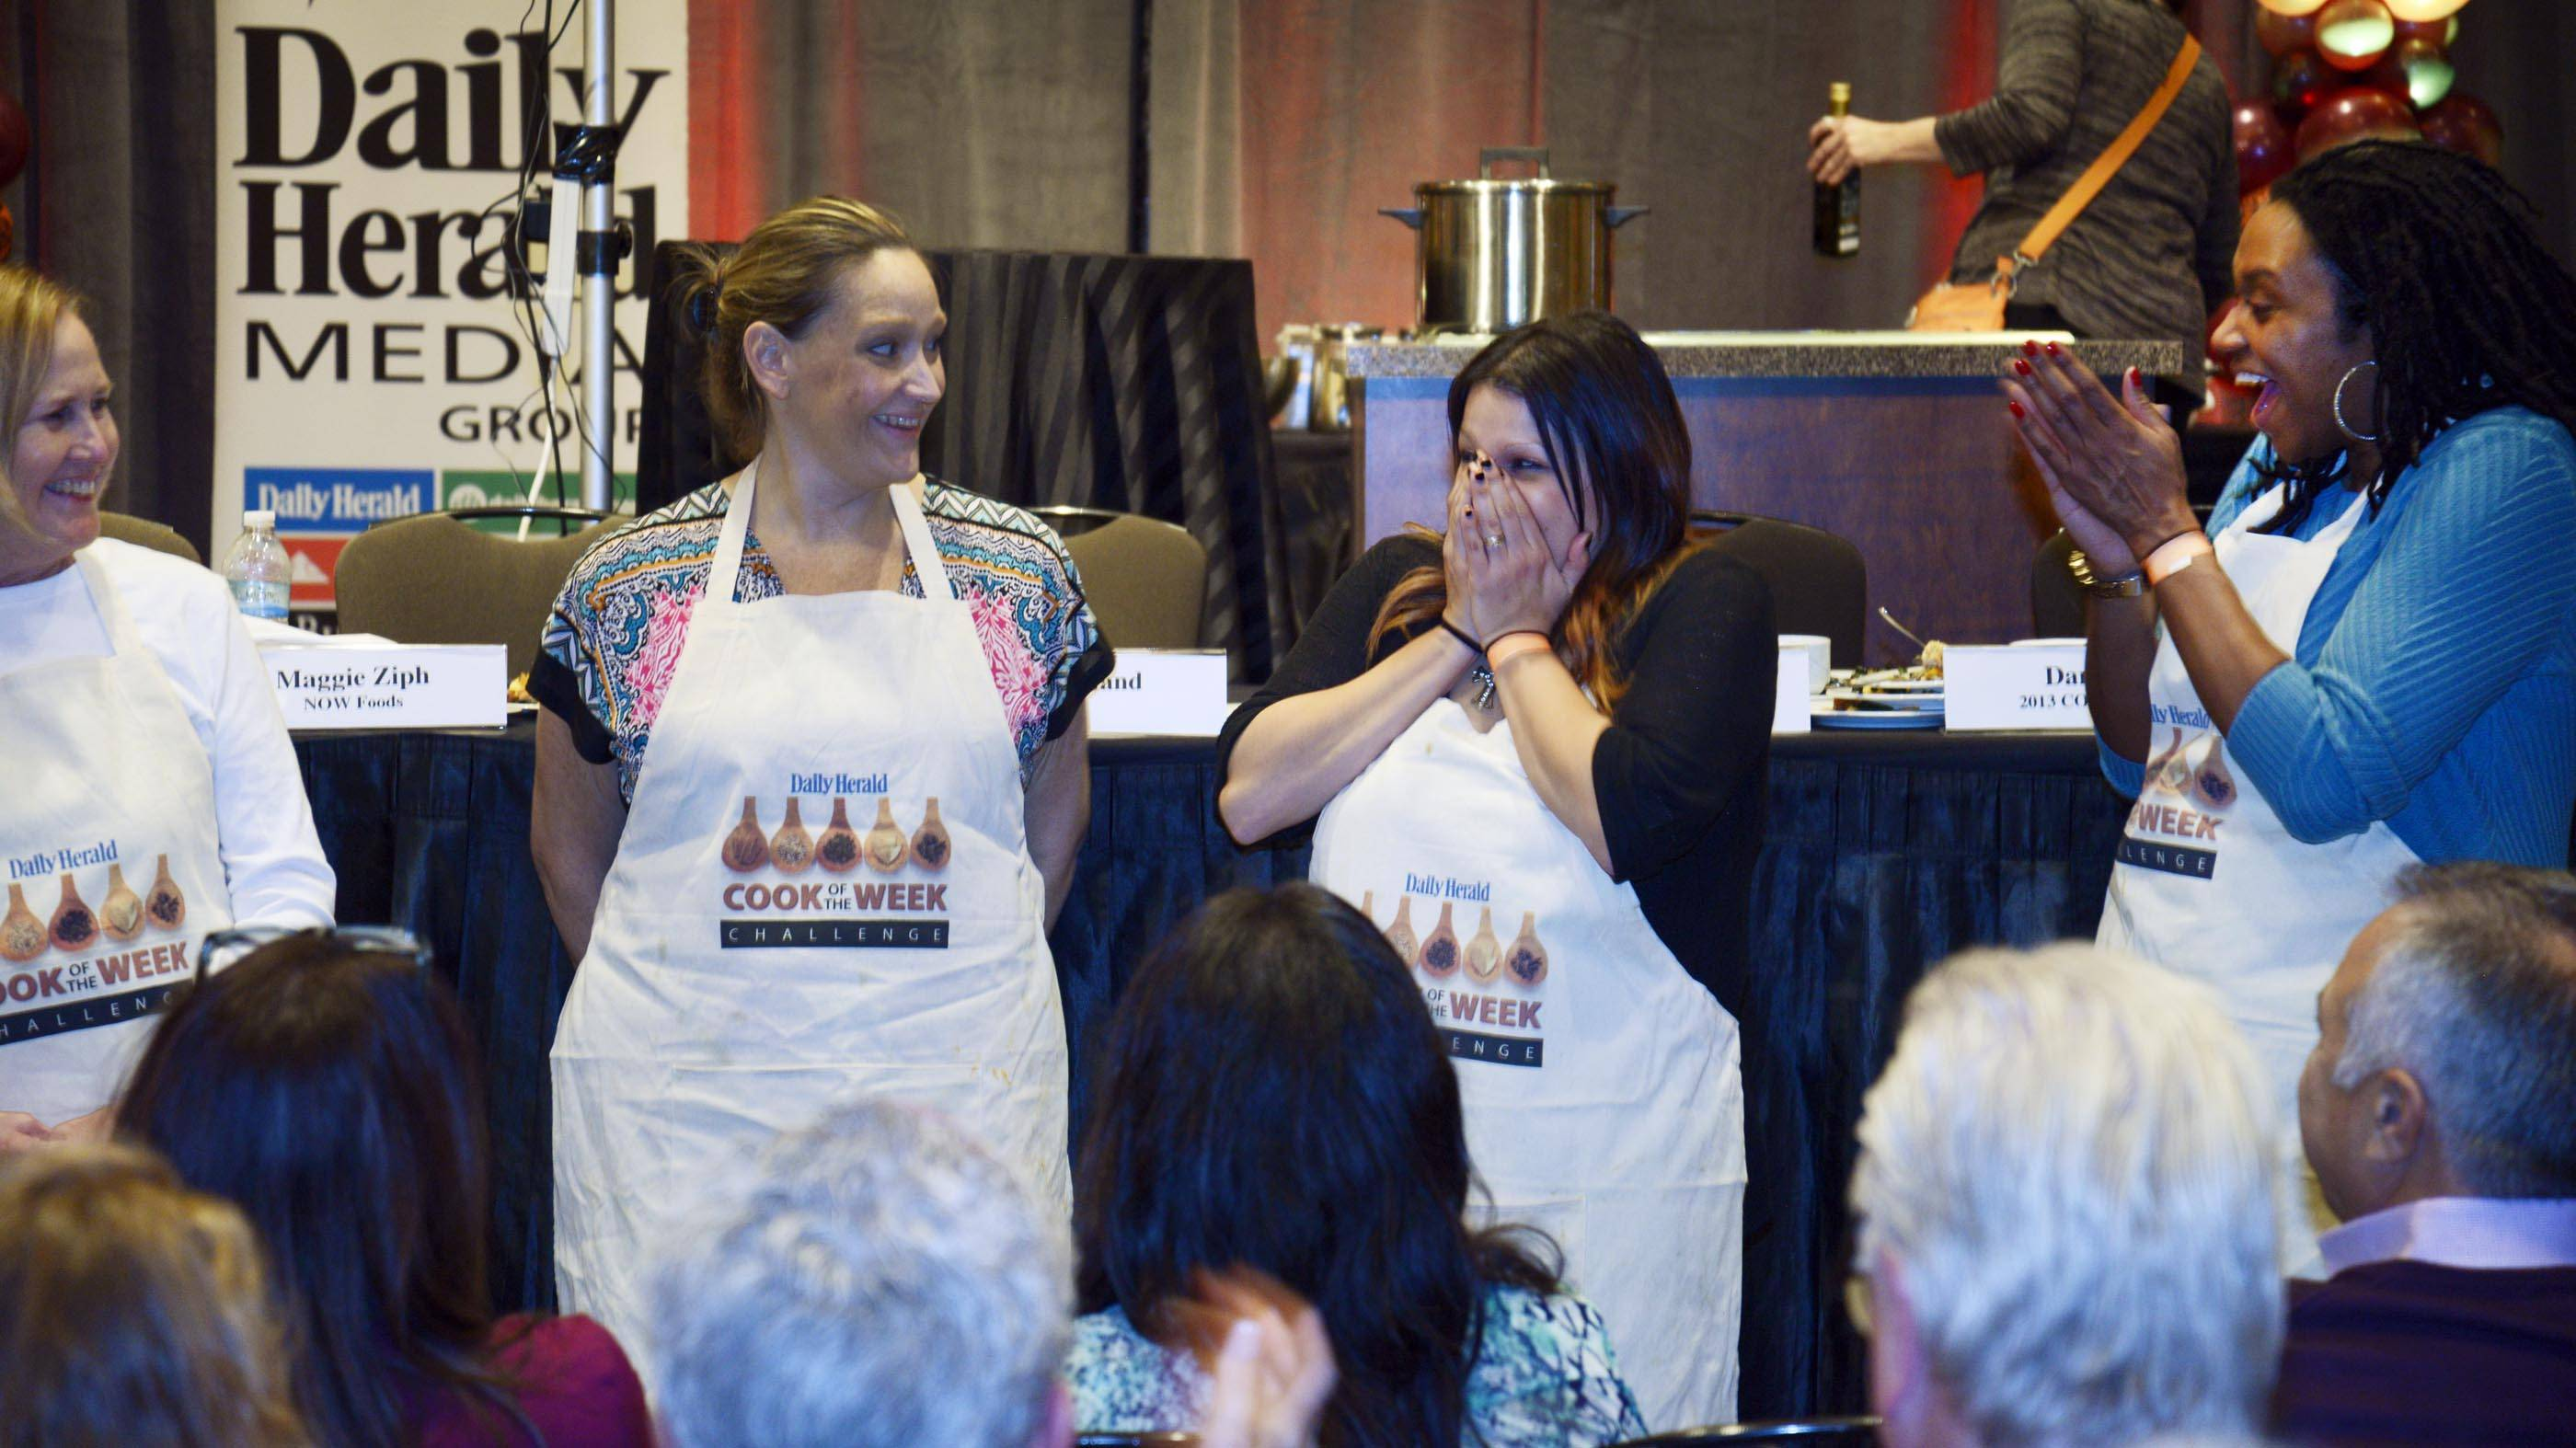 Jamie Andrade, of Elk Grove Village, reacts Monday as she is named the Daily Herald 2014 Cook of the Year after a cook-off earlier this month at the Hyatt Regency Schaumburg. Other contestants are, Molly Sutton, of Arlington Heights, left, Emily Geddes, of Geneva, and Juanita Harrell, of Wheaton, right.